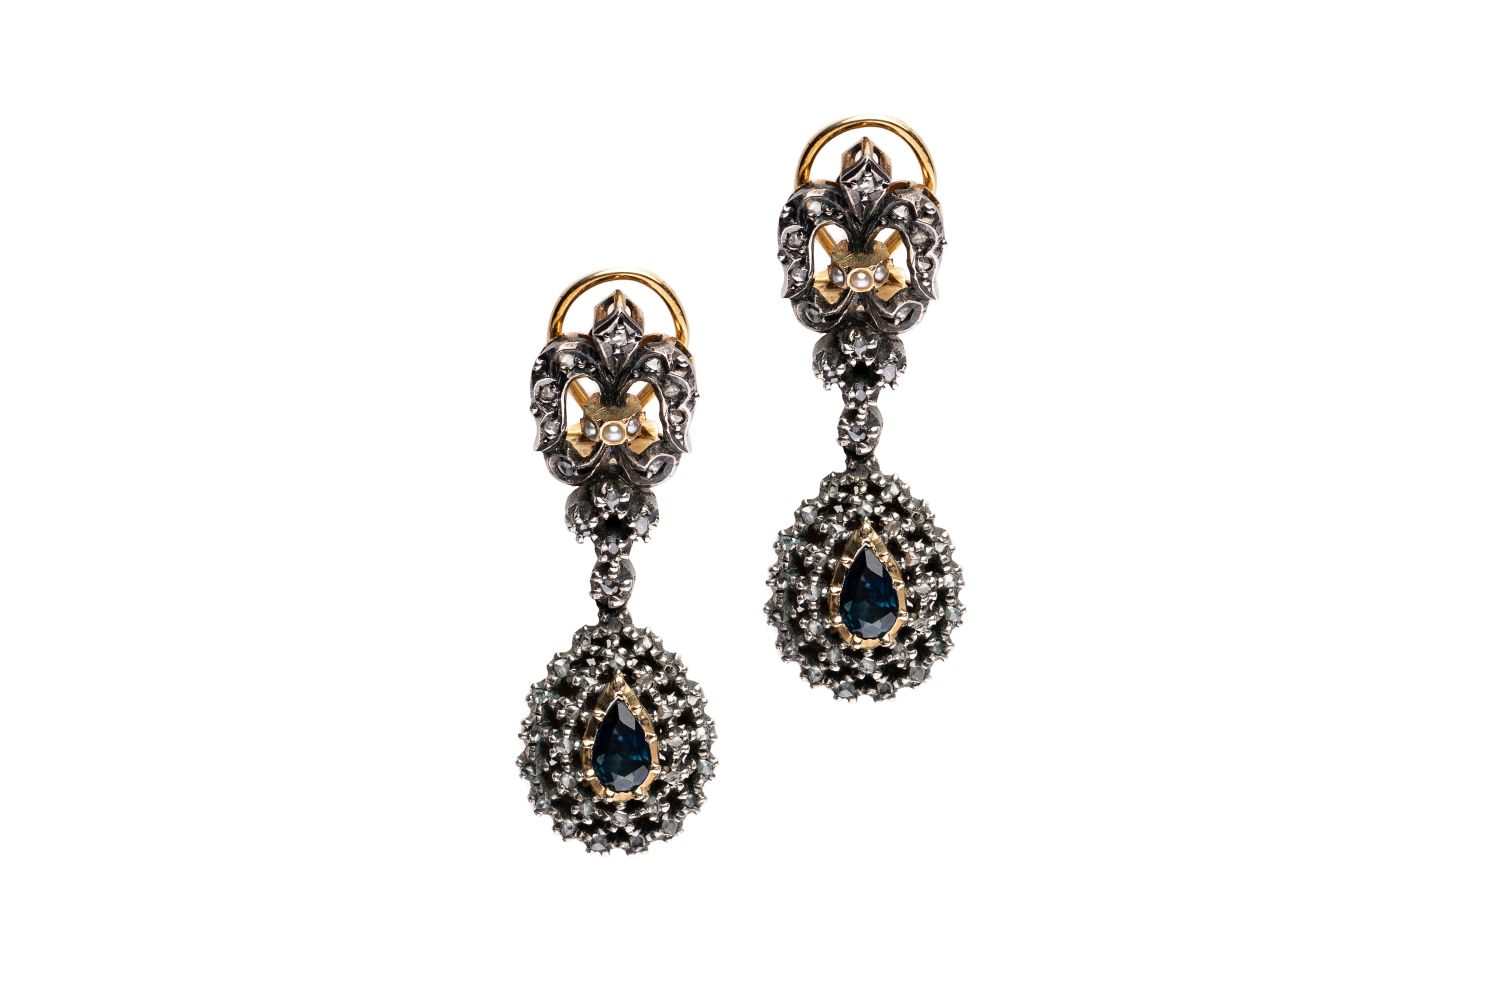 #164 Clip earrings | Ohrclipse Image